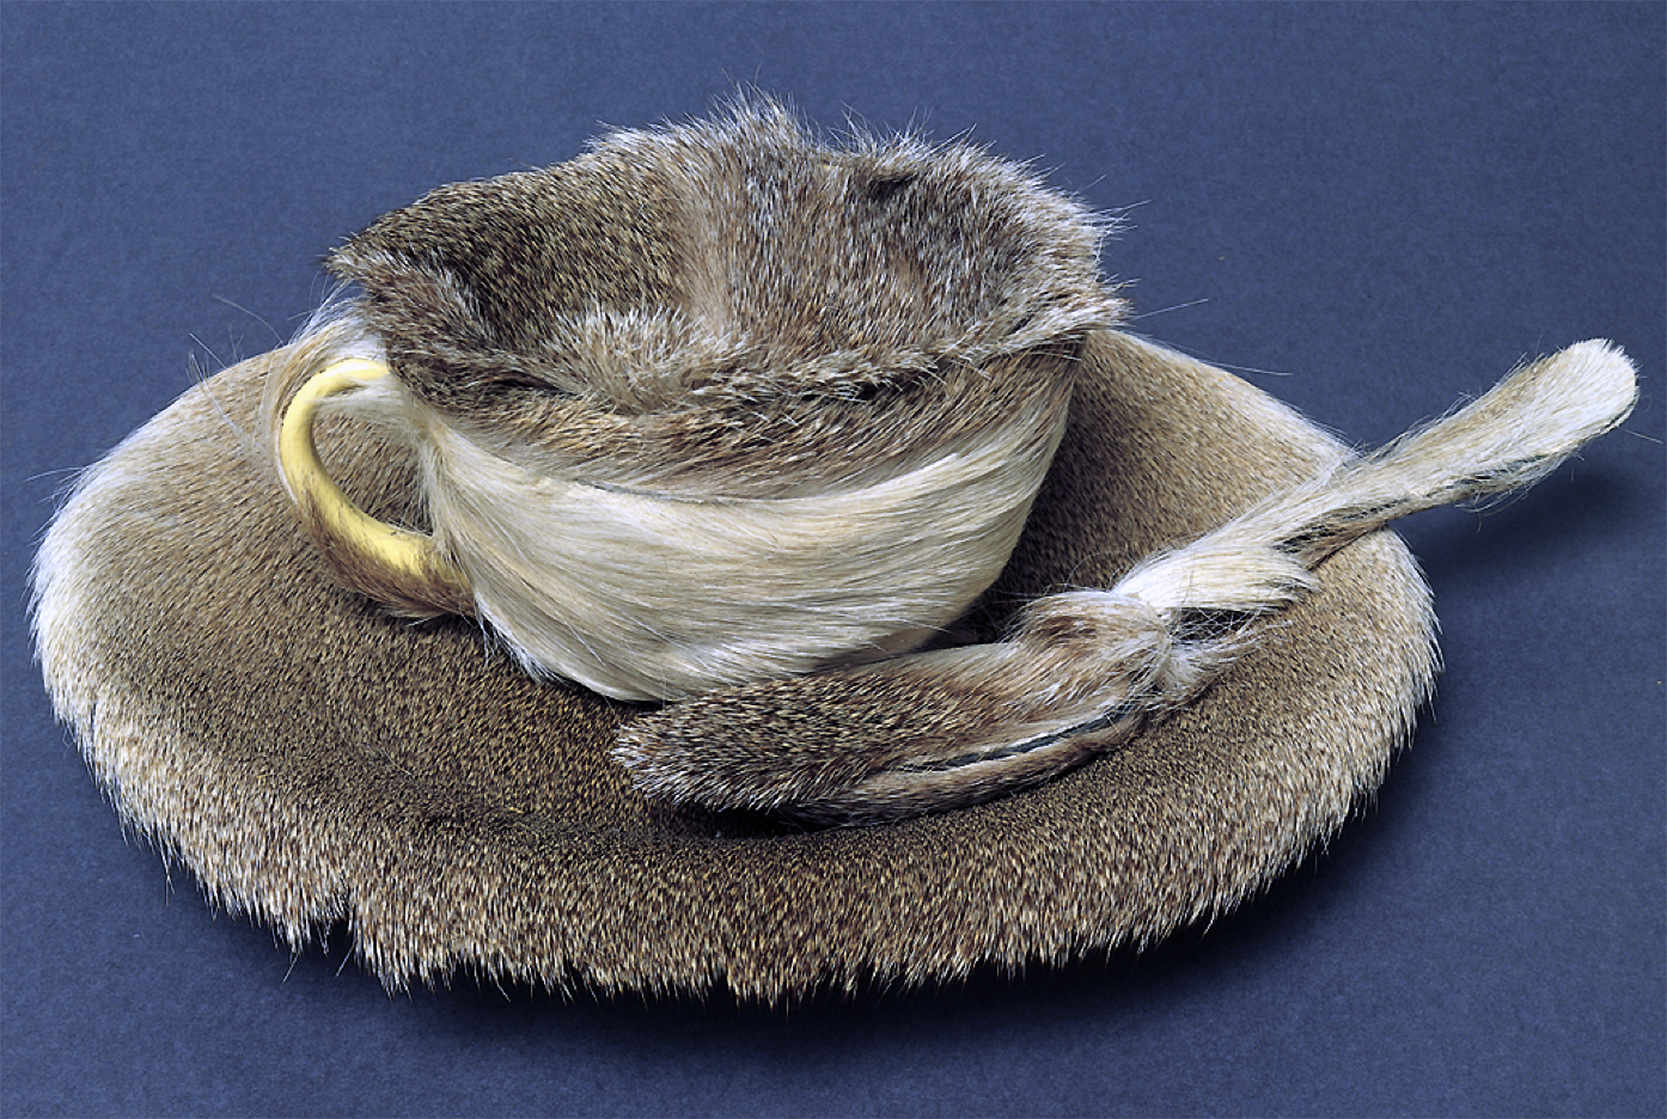 "Meret Oppenheim. Object, 1936. Fur-covered cup, saucer, and spoon, cup 4-3/8"" in diameter; saucer 9-3/8"" in diameter; spoon 8"" long, overall height 2-7/8"" (The Museum of Modern Art, New York)"